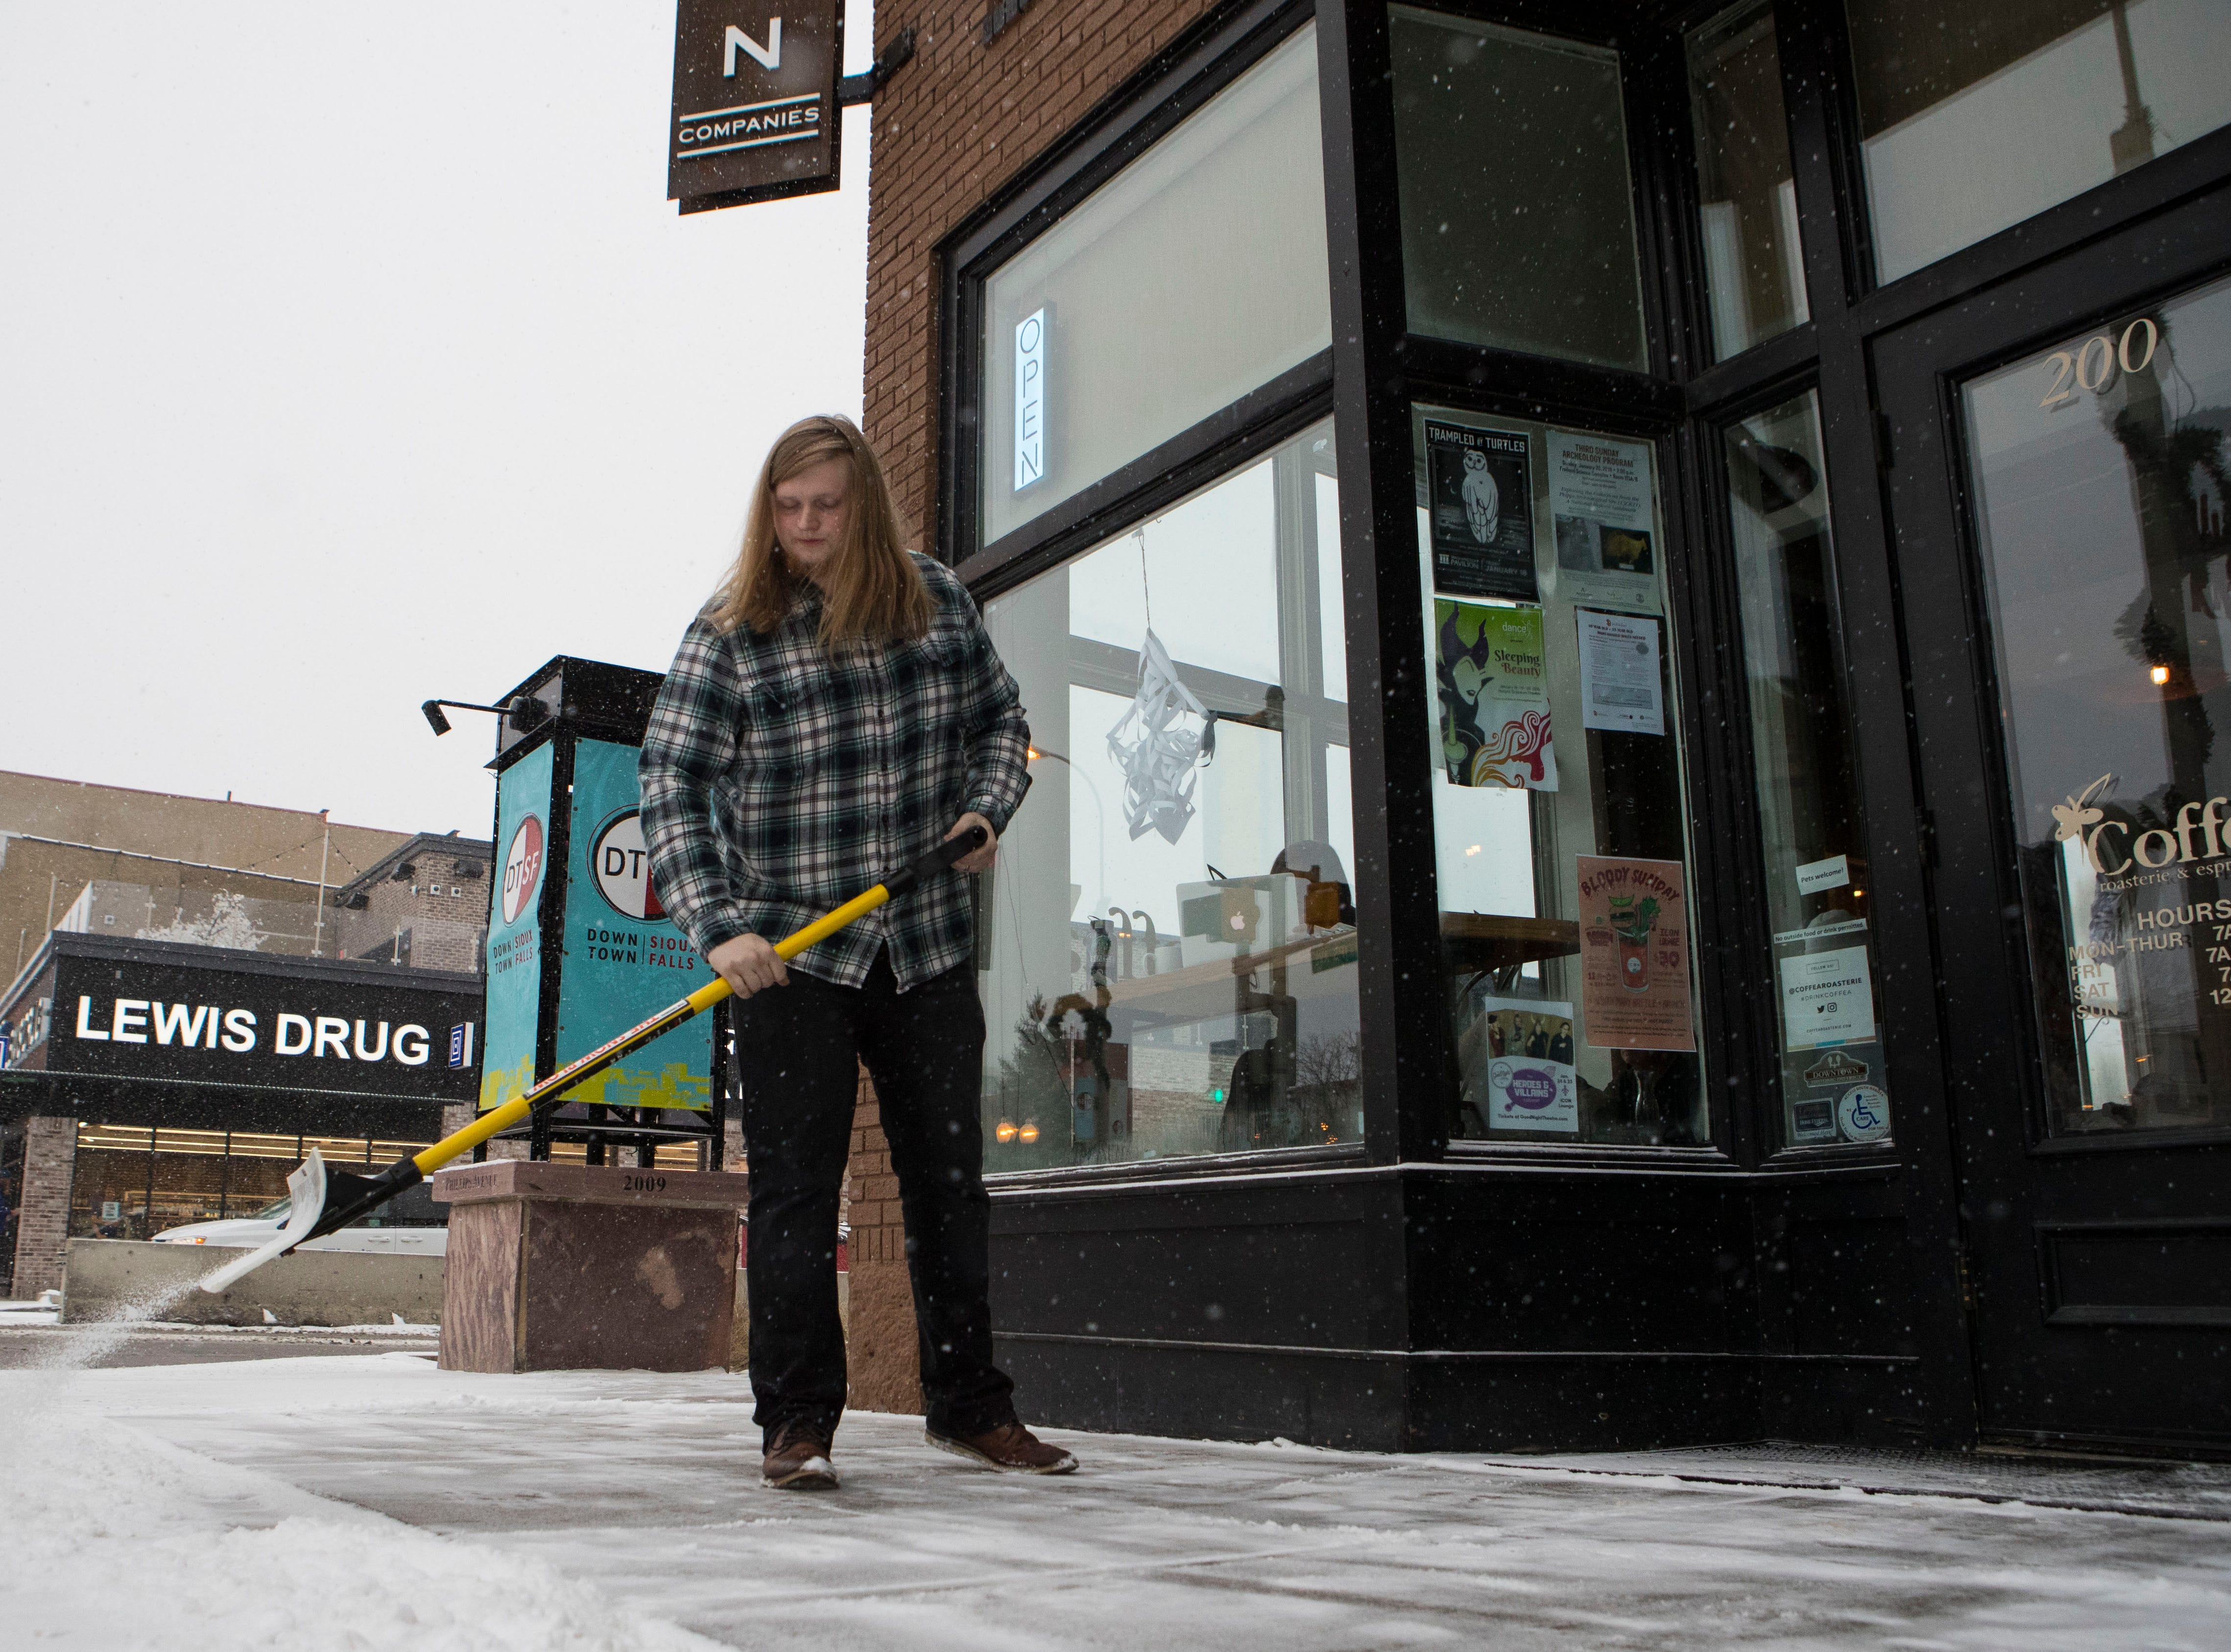 Doug Hair shovels snow outside of Coffea during a snow storm in Sioux Falls, S.D., Friday, Jan. 18, 2019.